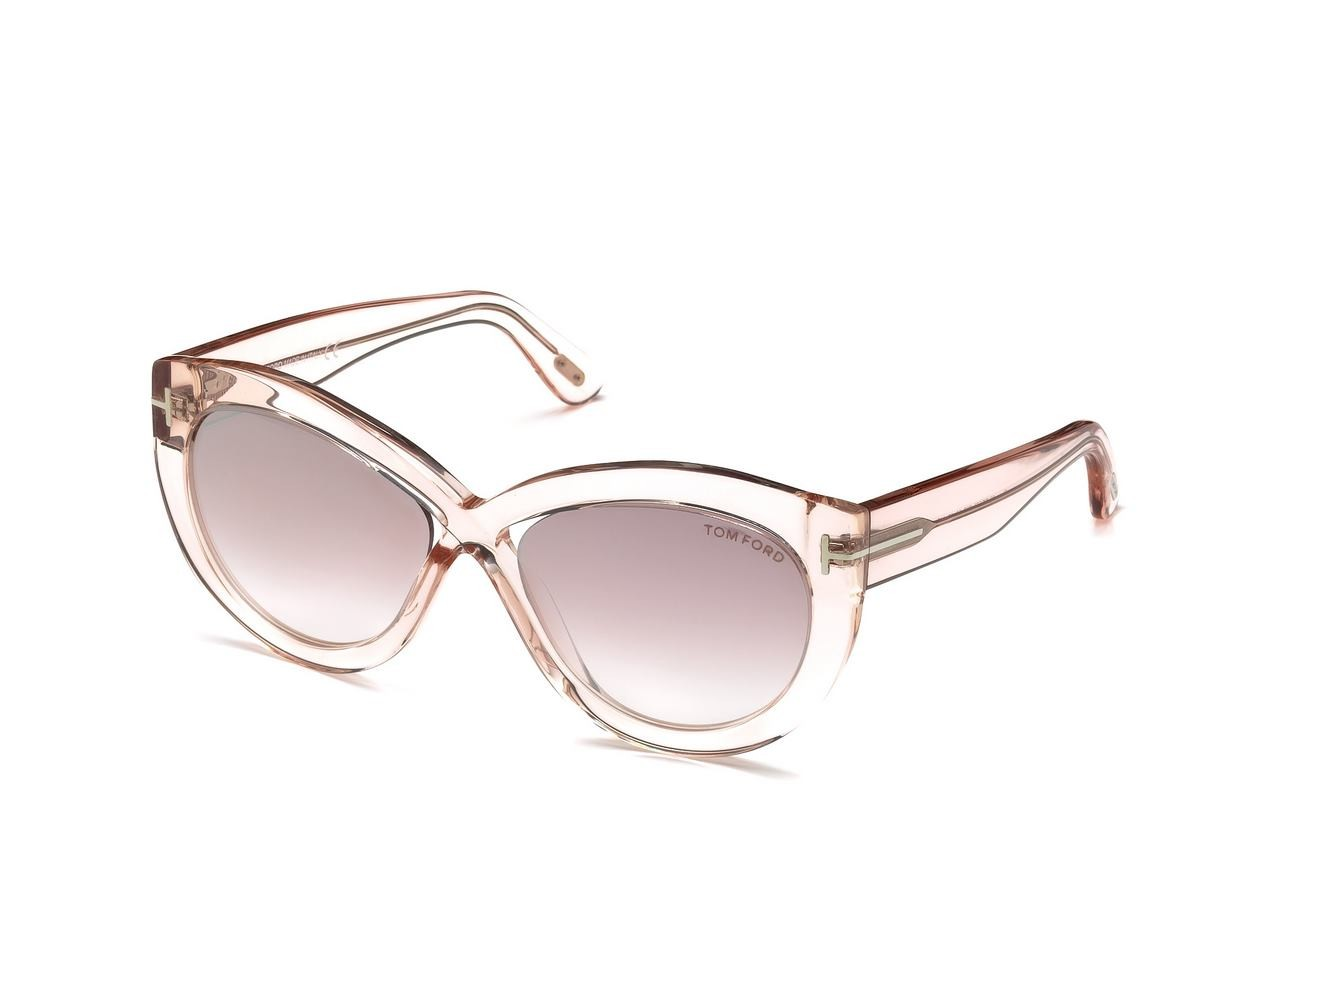 Tom Ford Sonnenbrille (FT0577 72Z 56) ANKruUfNd